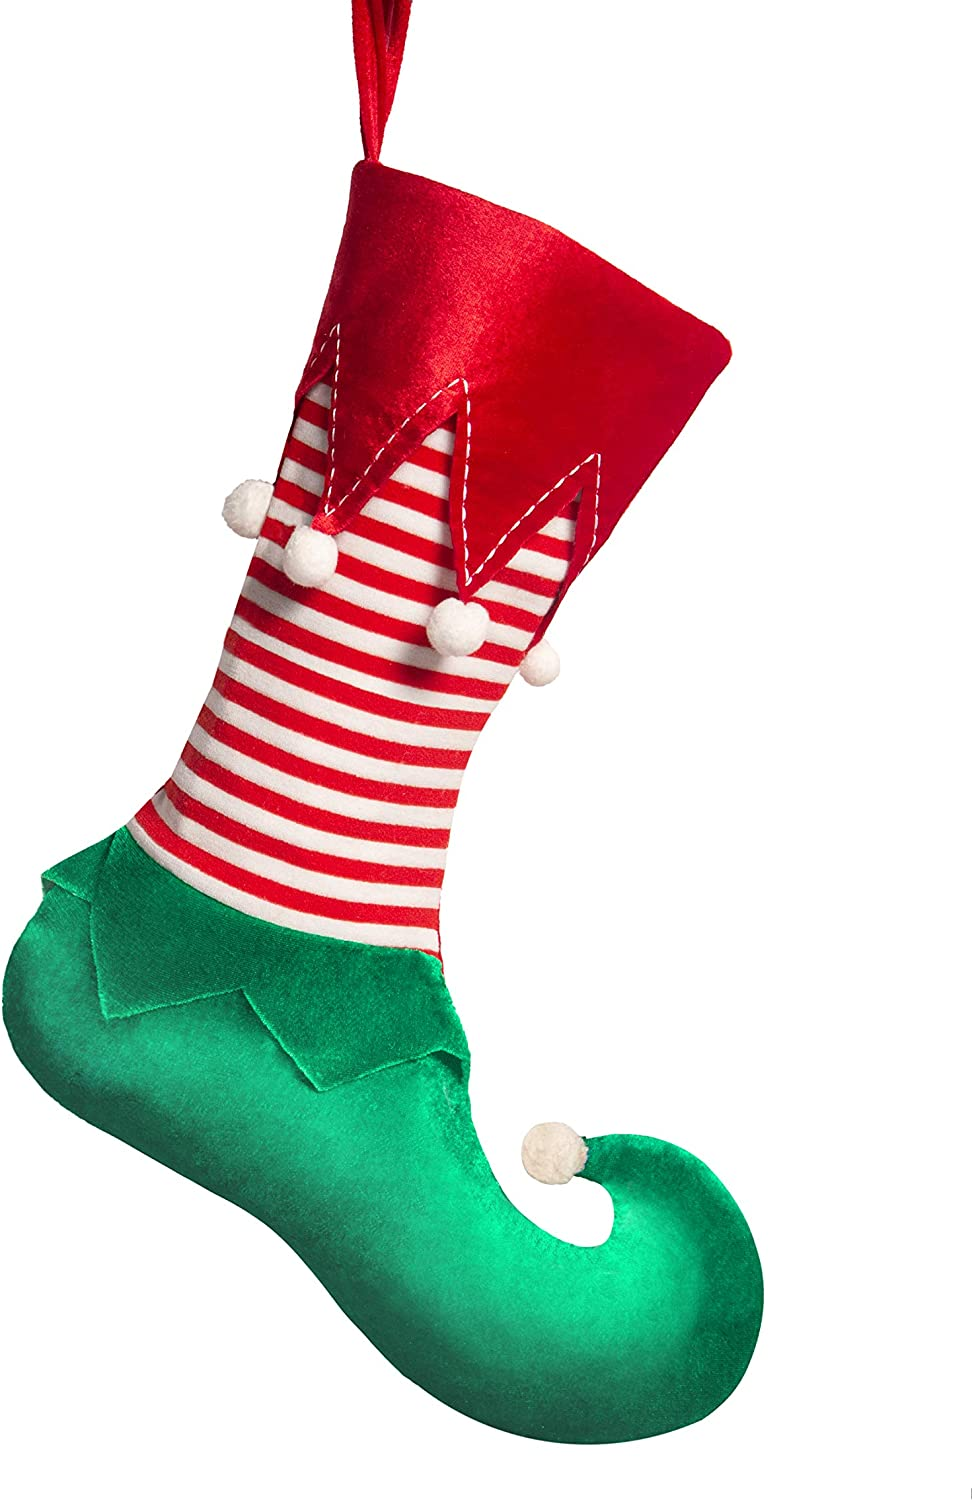 Worldeco Christmas Stocking Home Decorations Gifts Funny Elf Pattern Xmas Present Socks Dot Faux Fur Cuff 21in